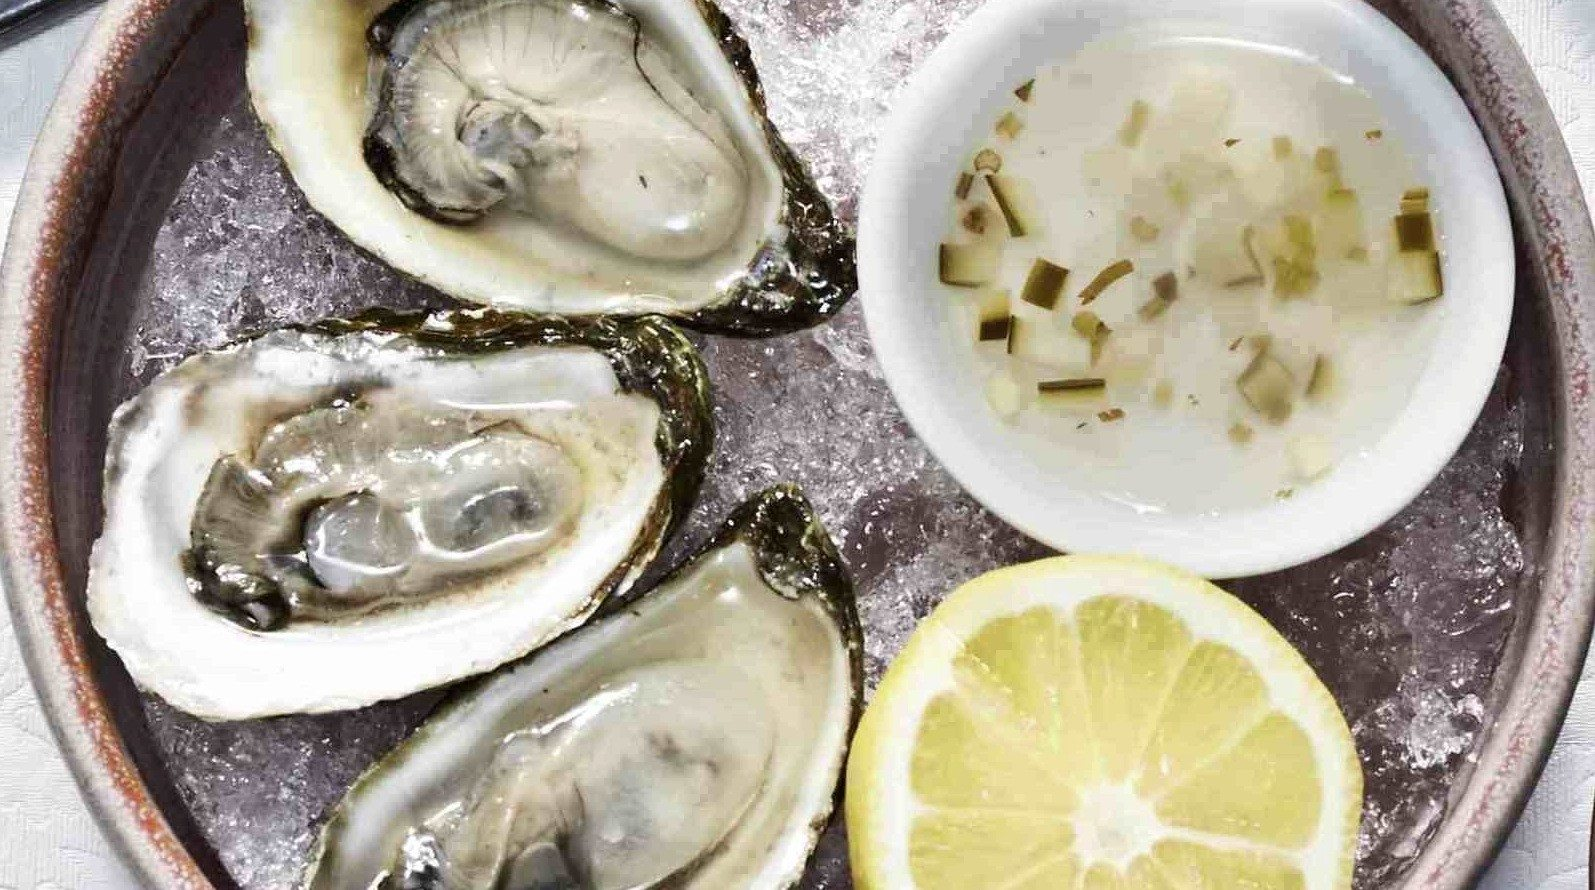 SPOTLIGHT: A visit to Restaurant E18hteen's raw bar